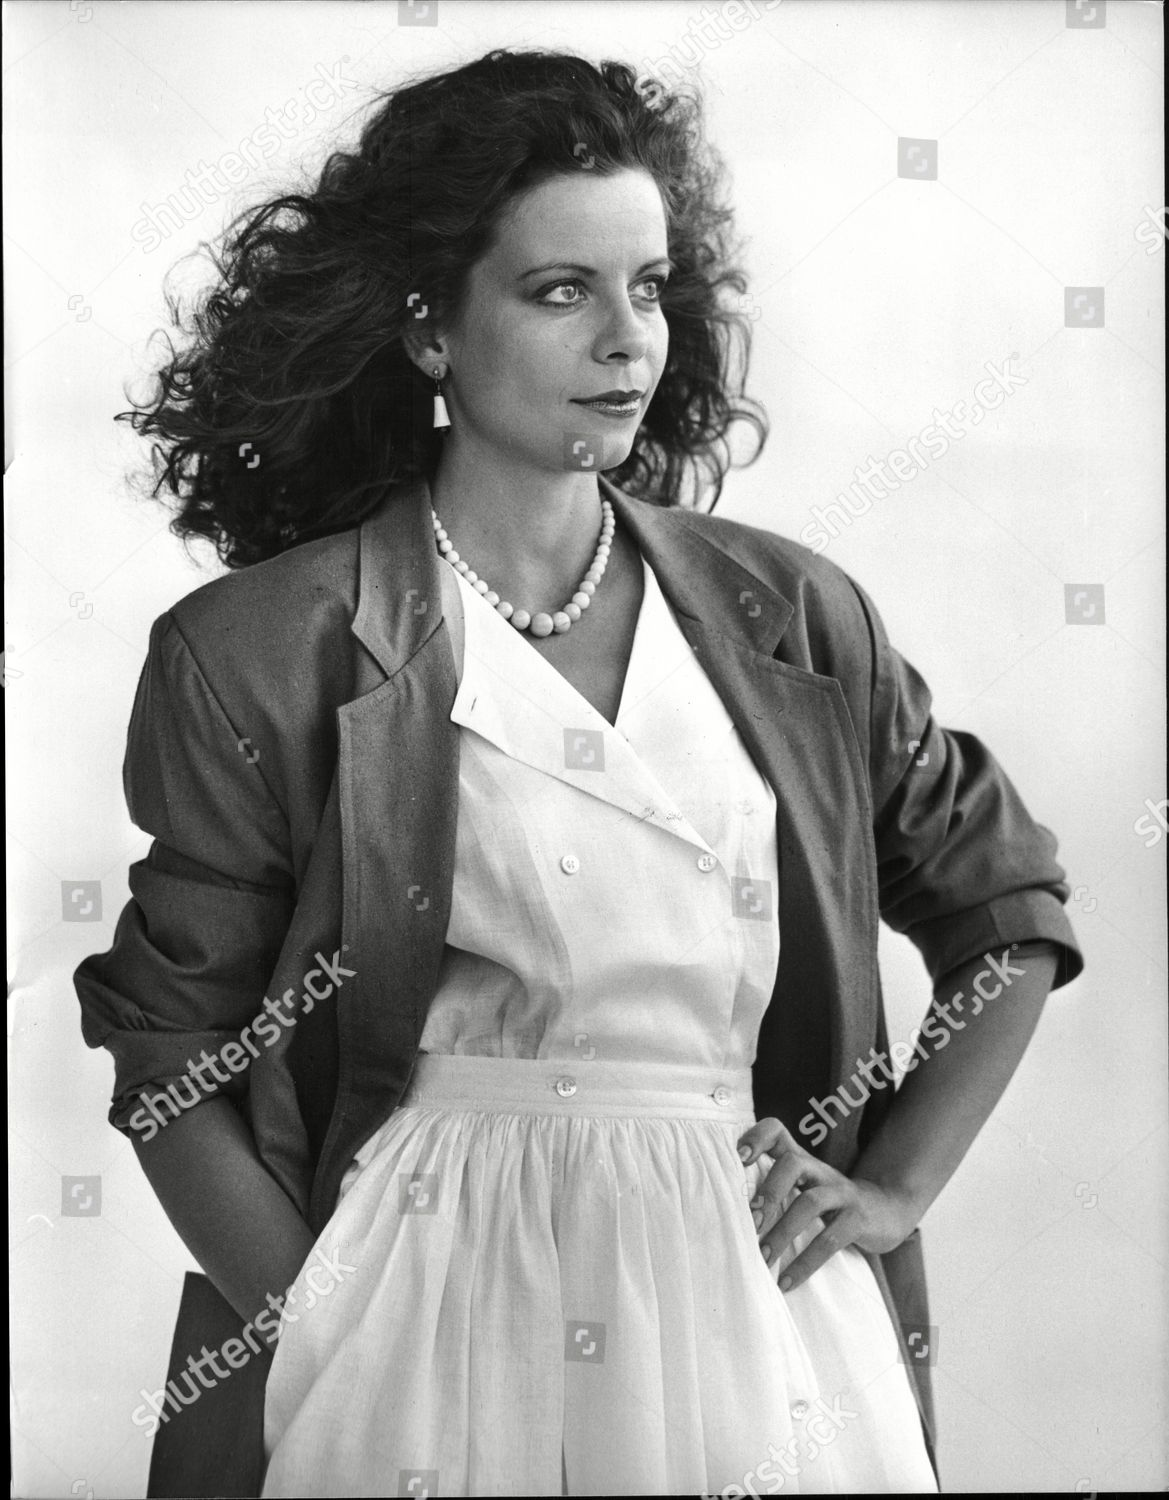 Watch Stephanie Zimbalist born October 8, 1956 (age 62) video